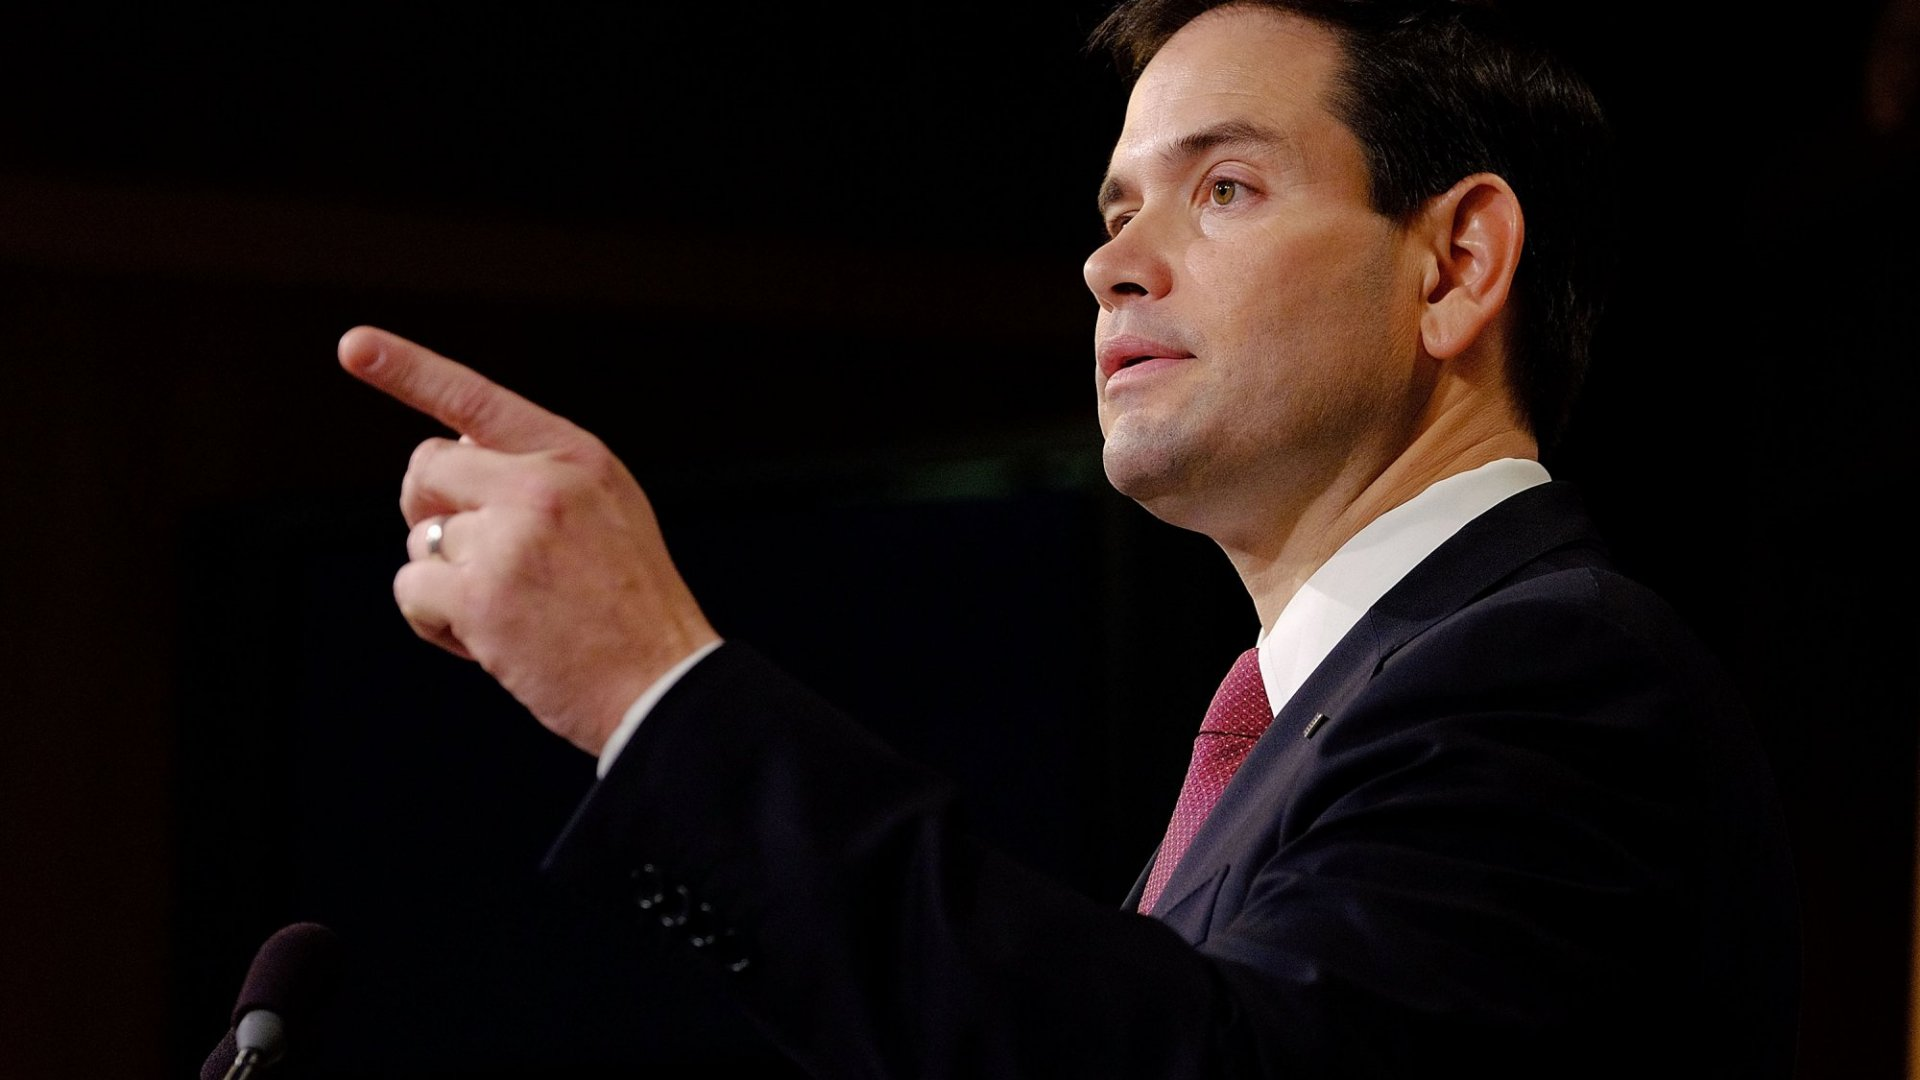 Marco Rubio, the junior senator from Florida, announced his run for president on April 13.